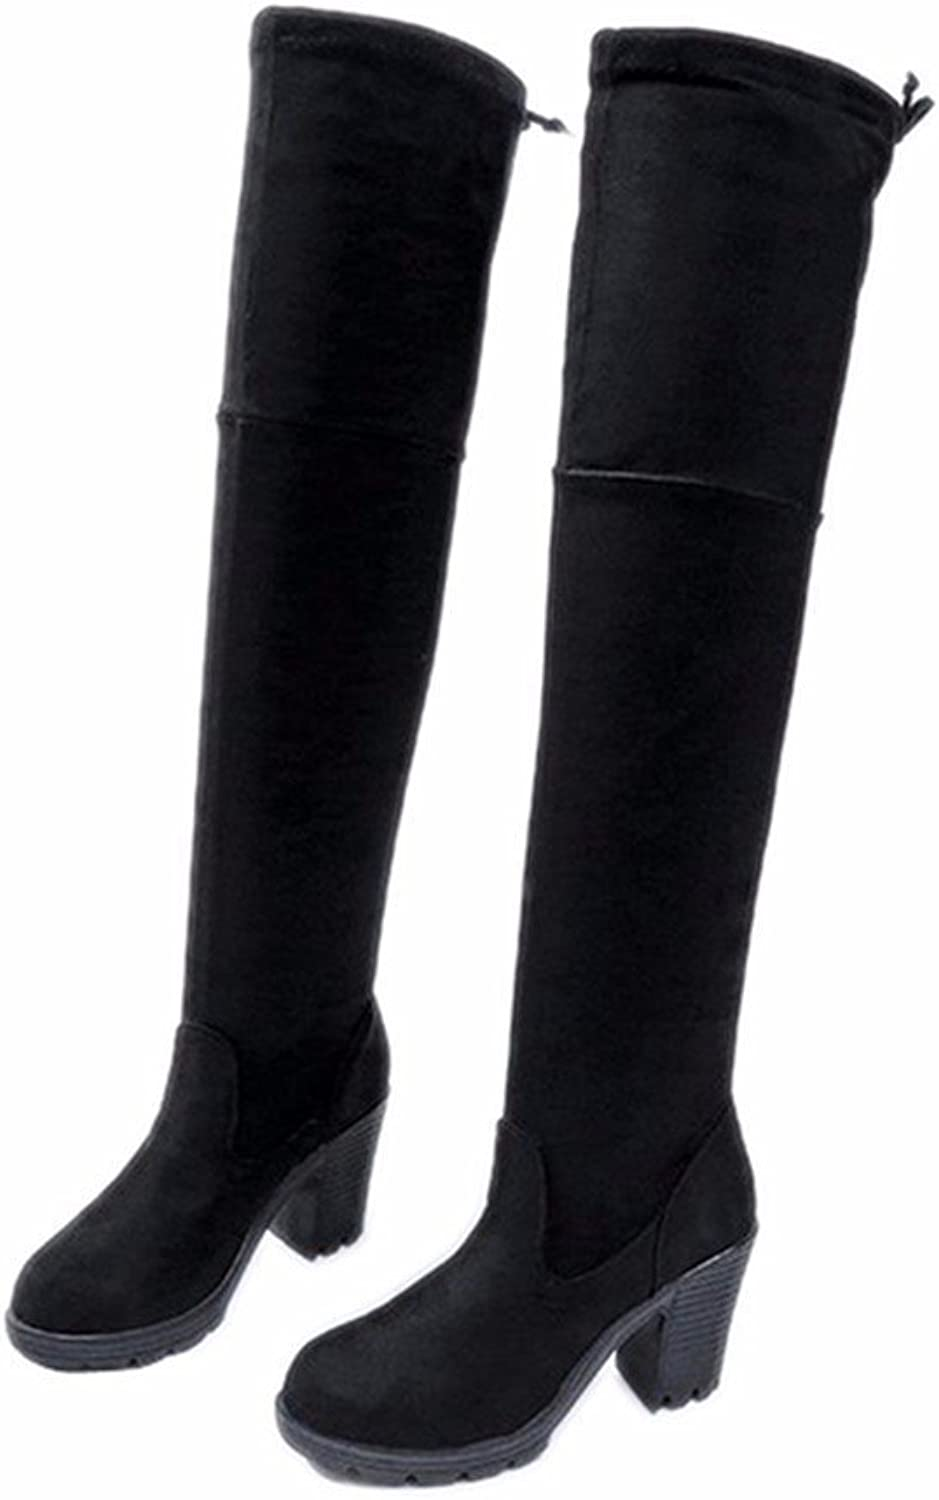 DIDIDD Ladies High-Heeled Knee Boots with Thick Frosted Elastic Thin round Suede shoes,37 Eu,Black